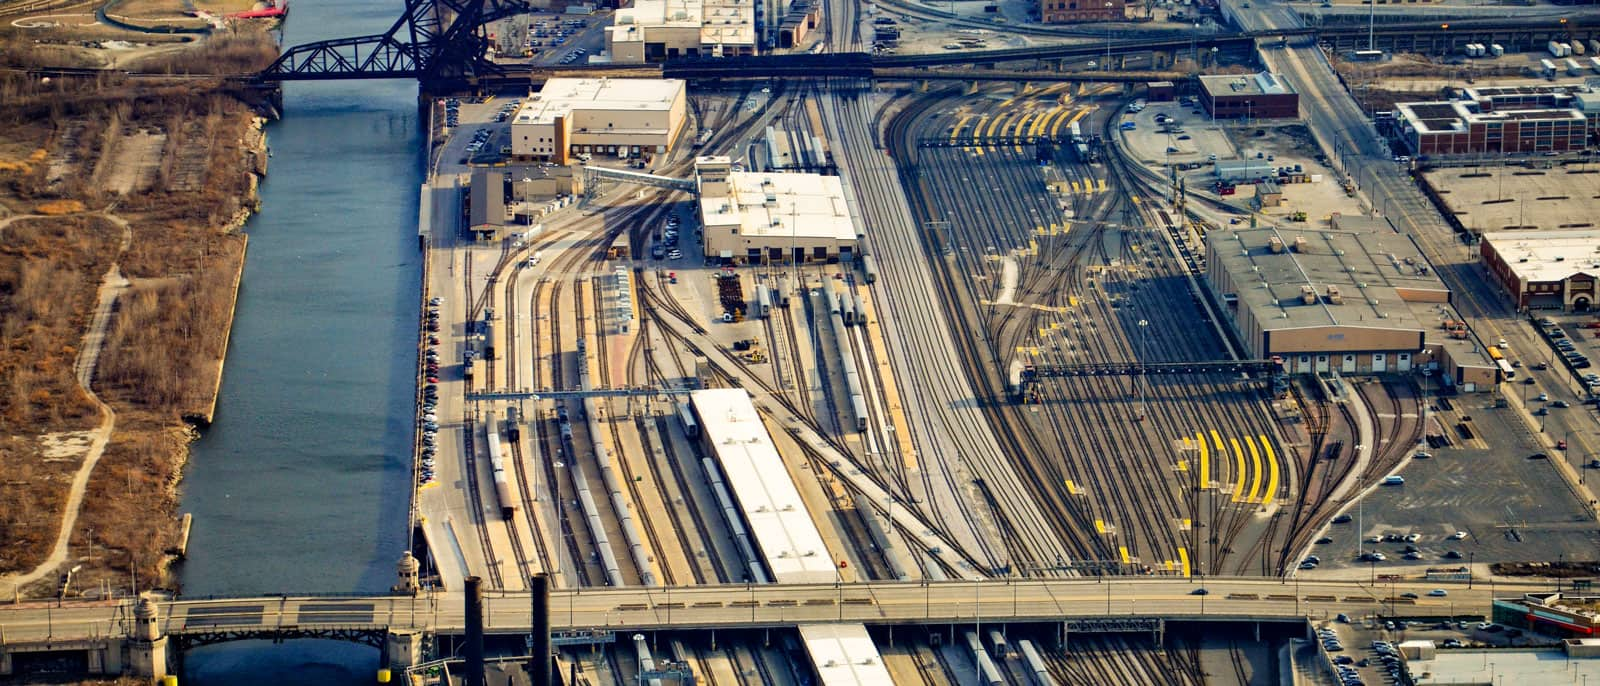 Chicago railyard next to the Chicago River